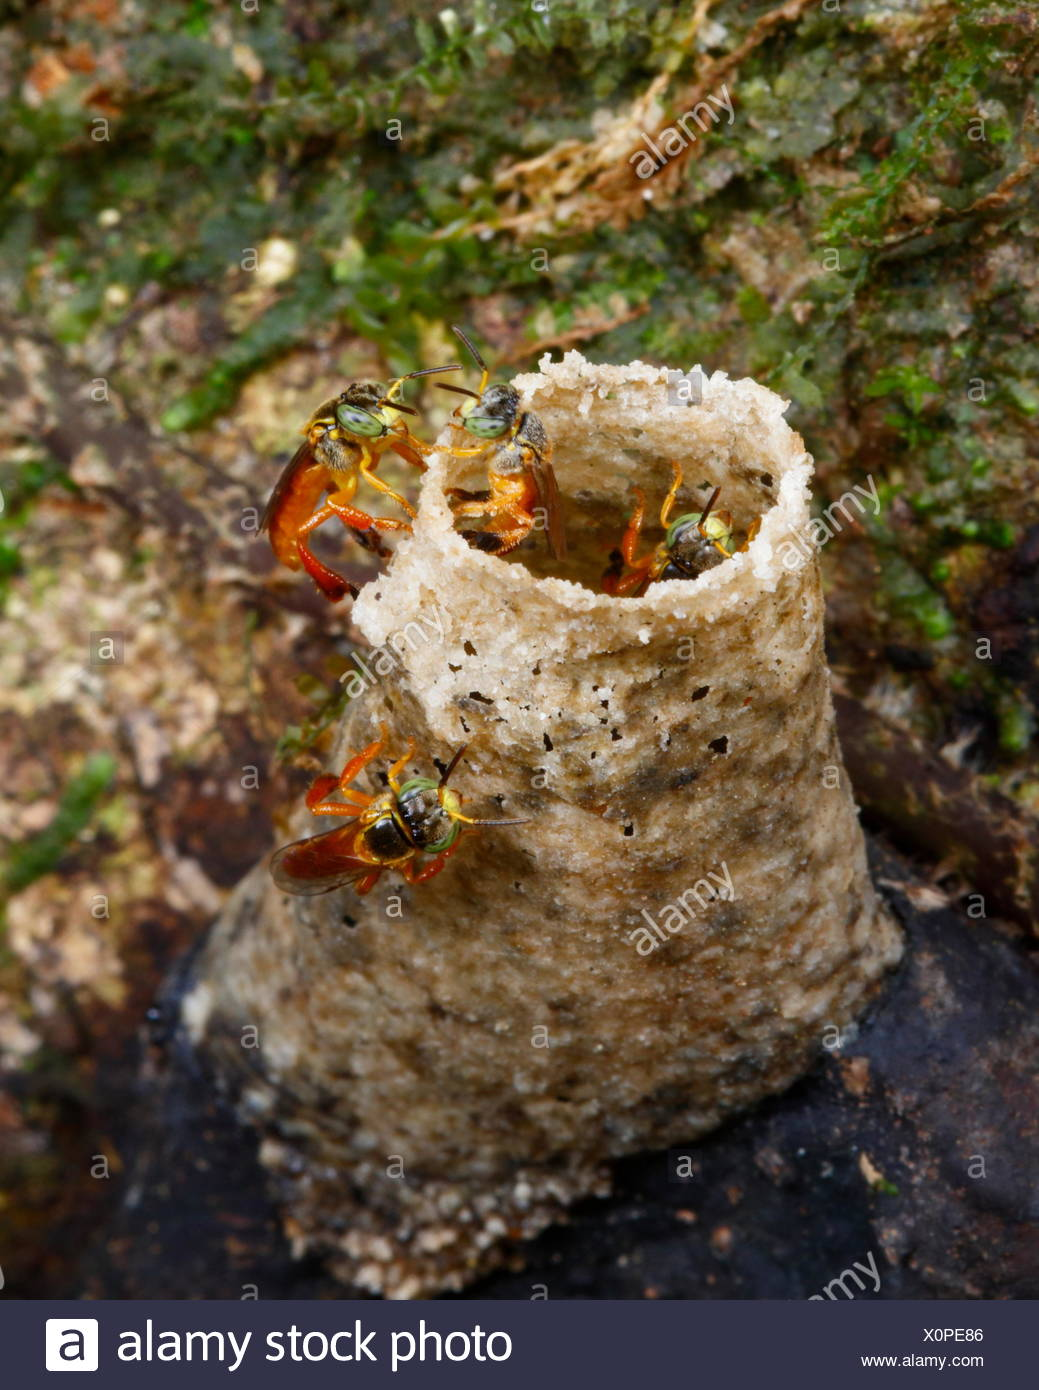 A tube nest of stingless bees, Tetragonisca species. - Stock Image